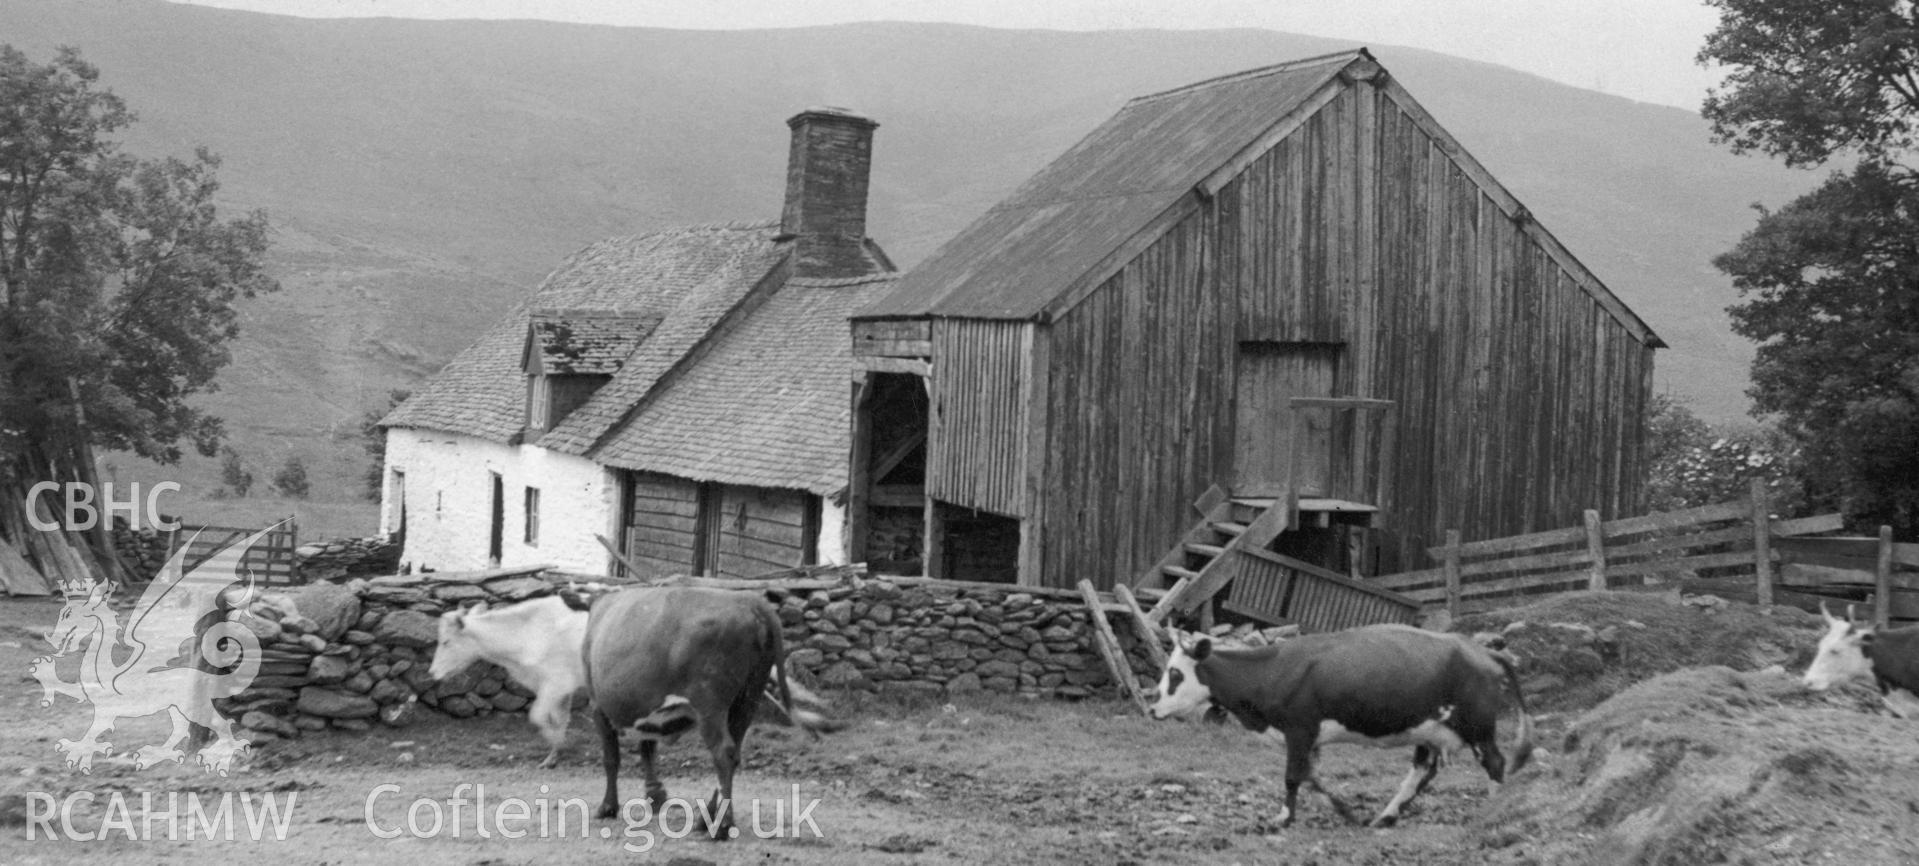 View of Cil-Oerwynt Farmhouse taken by Miss M. Wight circa 1954.